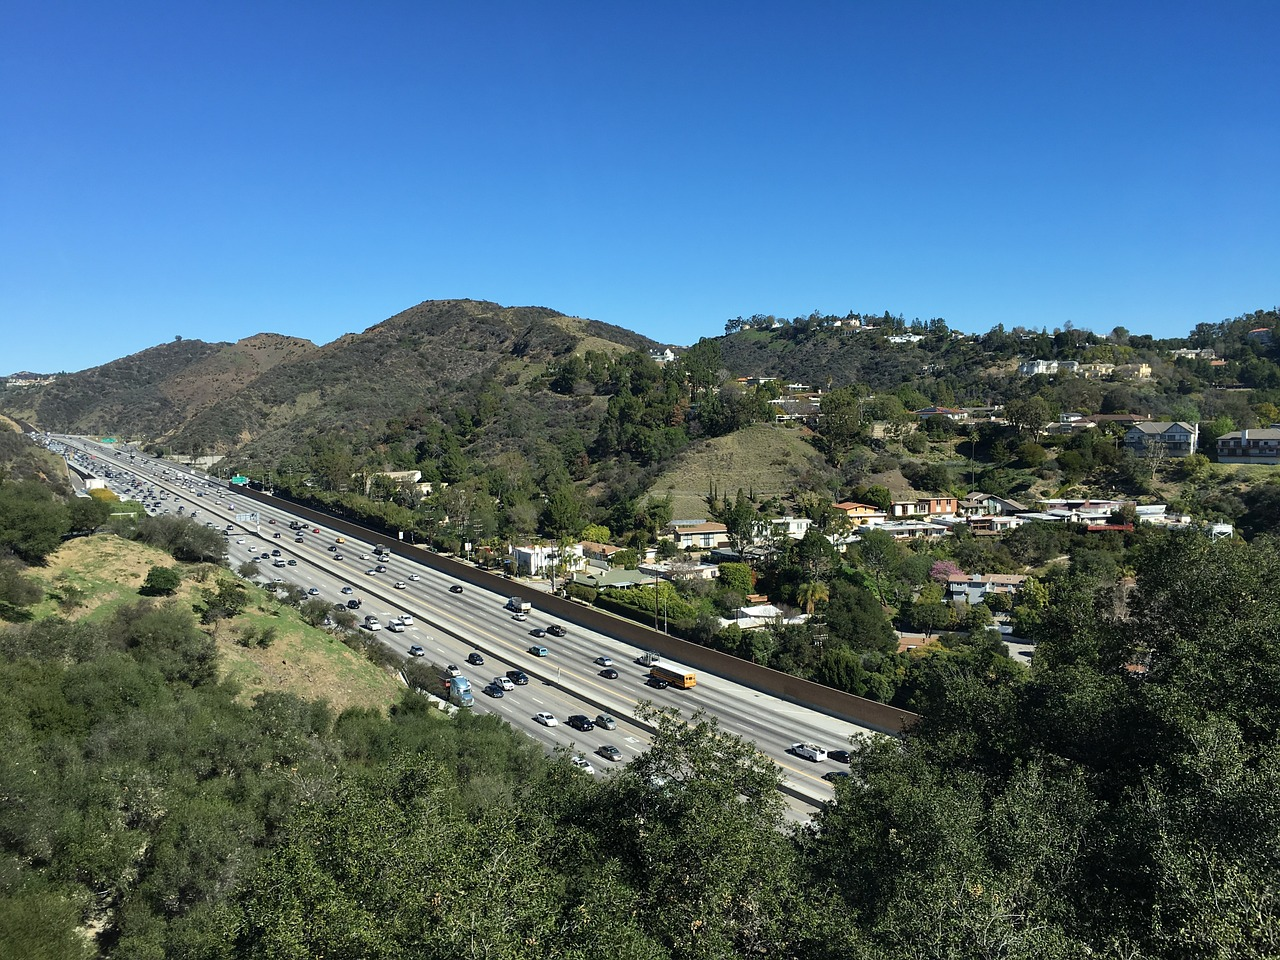 Los-angeles highway